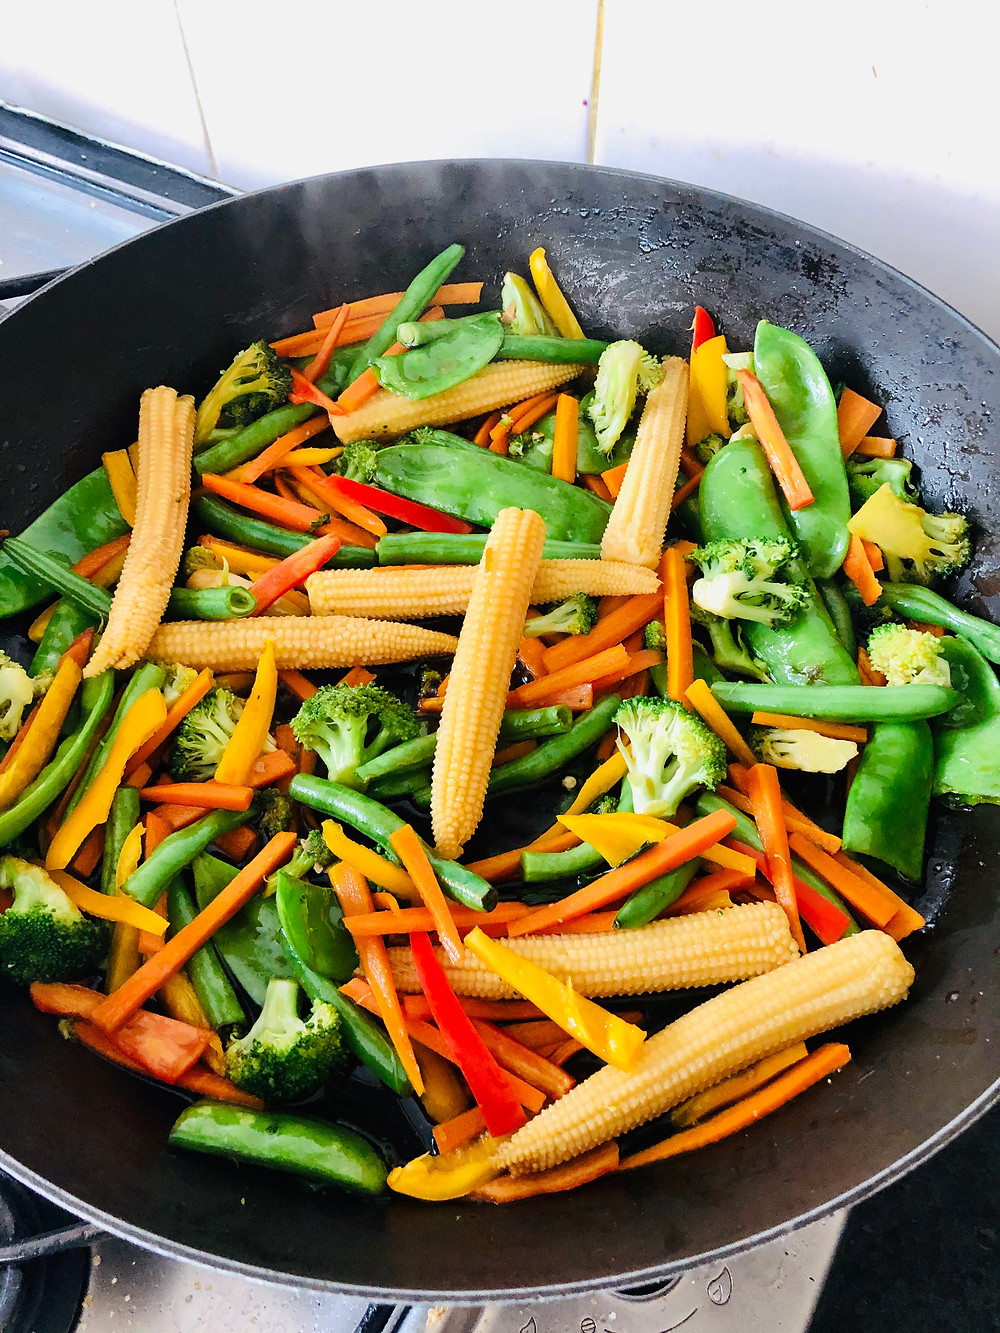 Corn, broccoli, peas, beans, capsicum stir fried in a pan with Japanese sauce